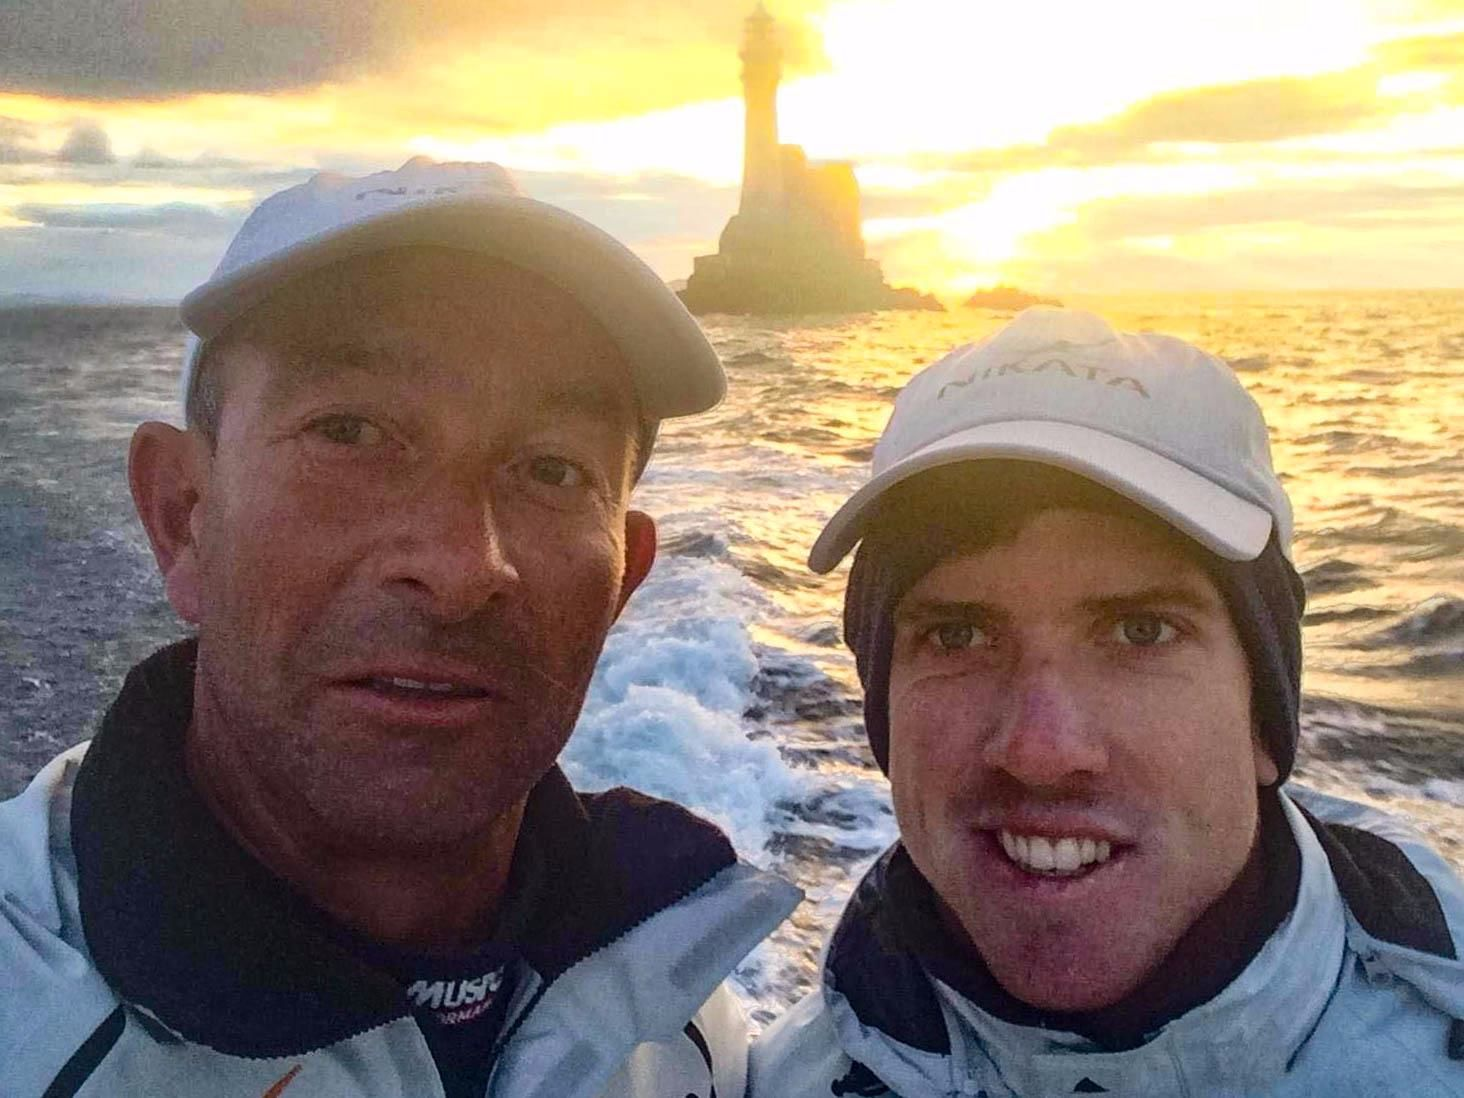 Peter Burling with Ian Budgen grab a selfie at the Fastnet Rock as Nikata rounded. Credit: Ian Budgen